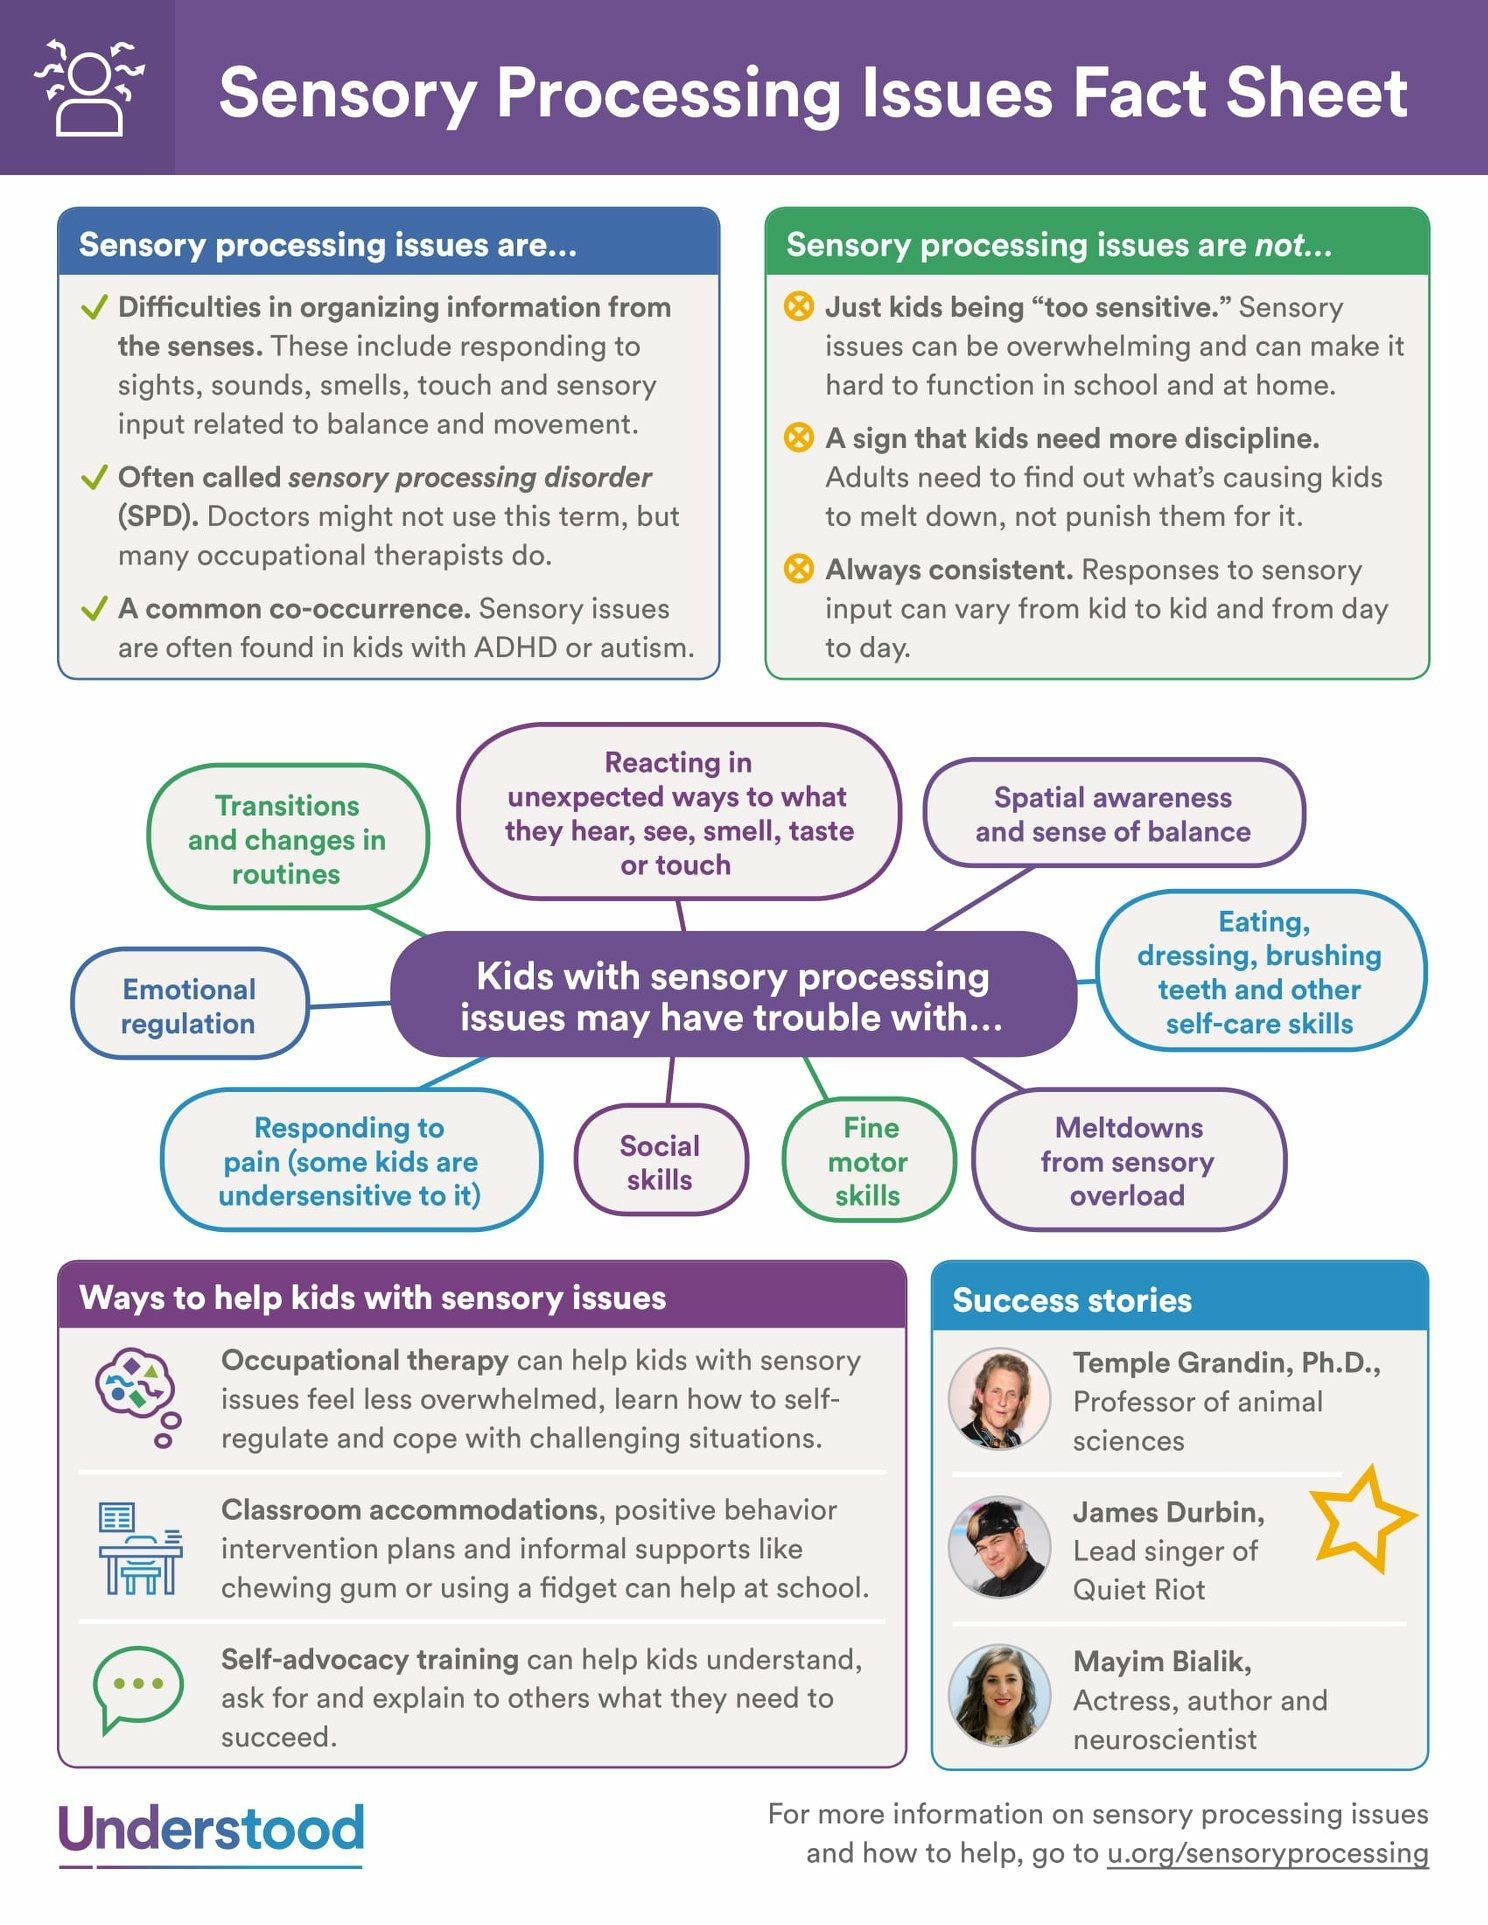 How Sensory Processing Issues Affect >> Pin By Hannah Bearr On Sensory Disorder Etc Sensory Processing